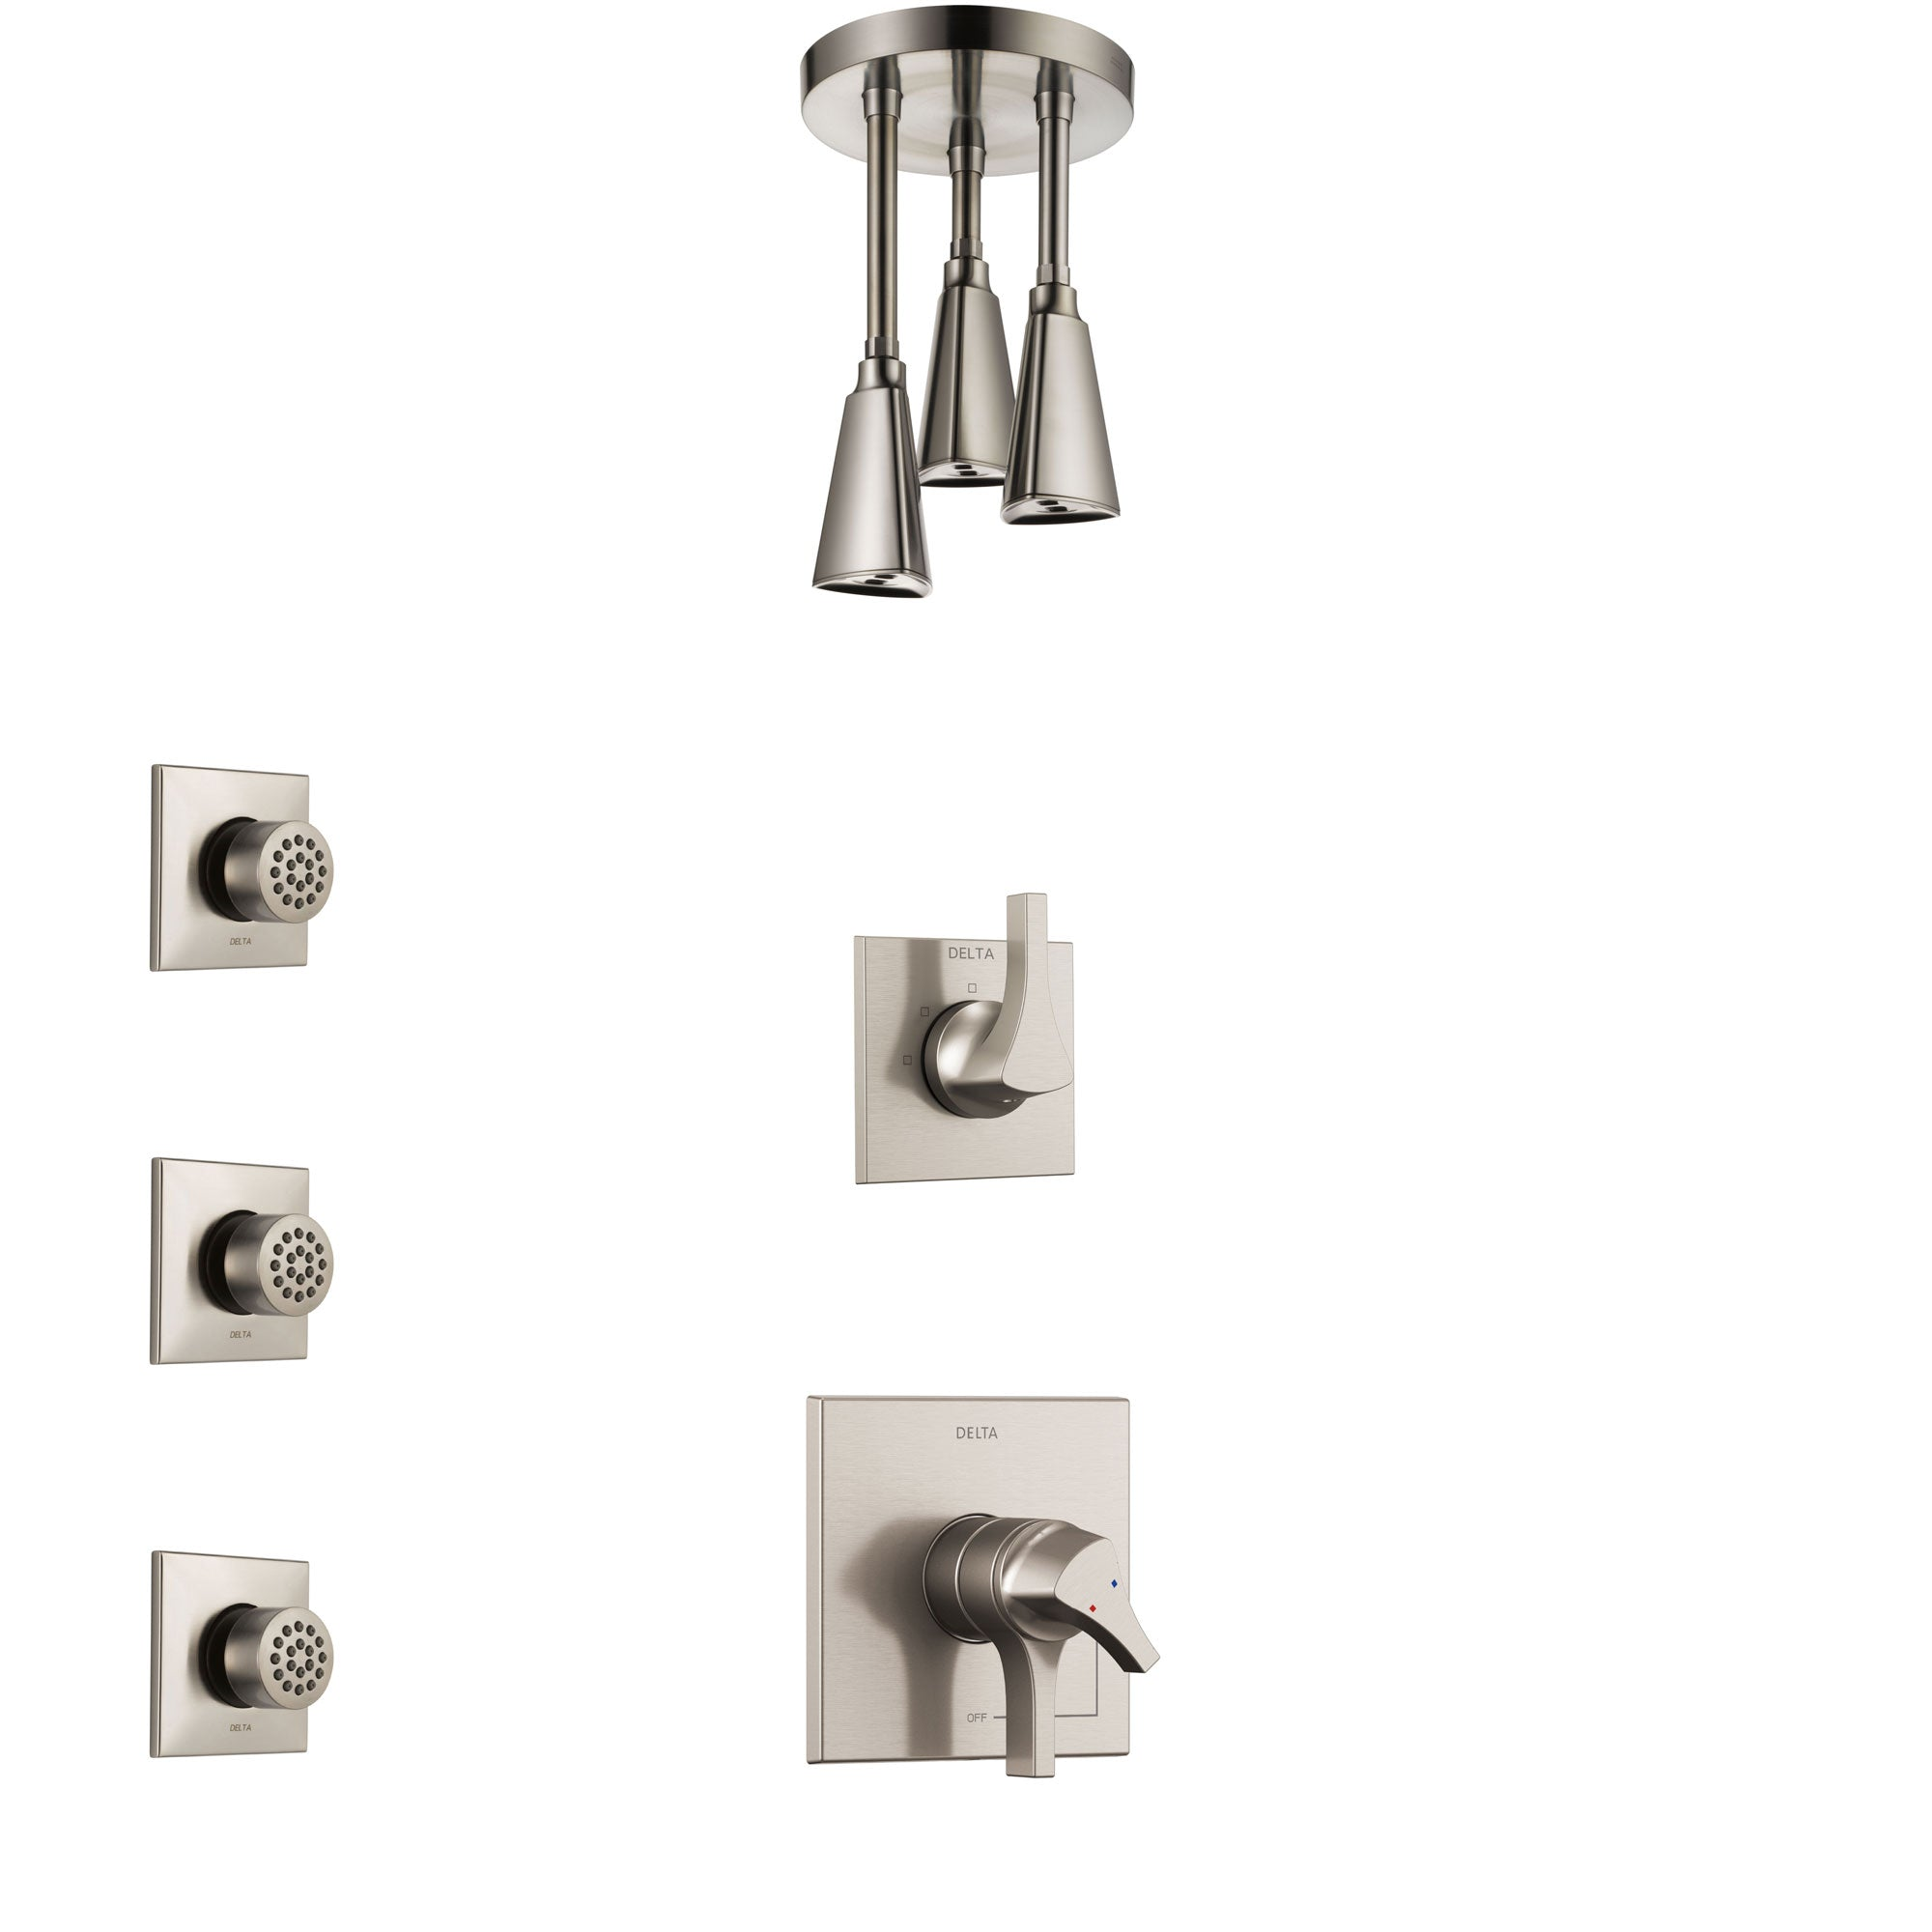 Delta Zura Stainless Steel Finish Shower System with Dual Control Handle, 3-Setting Diverter, Ceiling Mount Showerhead, and 3 Body Sprays SS1774SS6